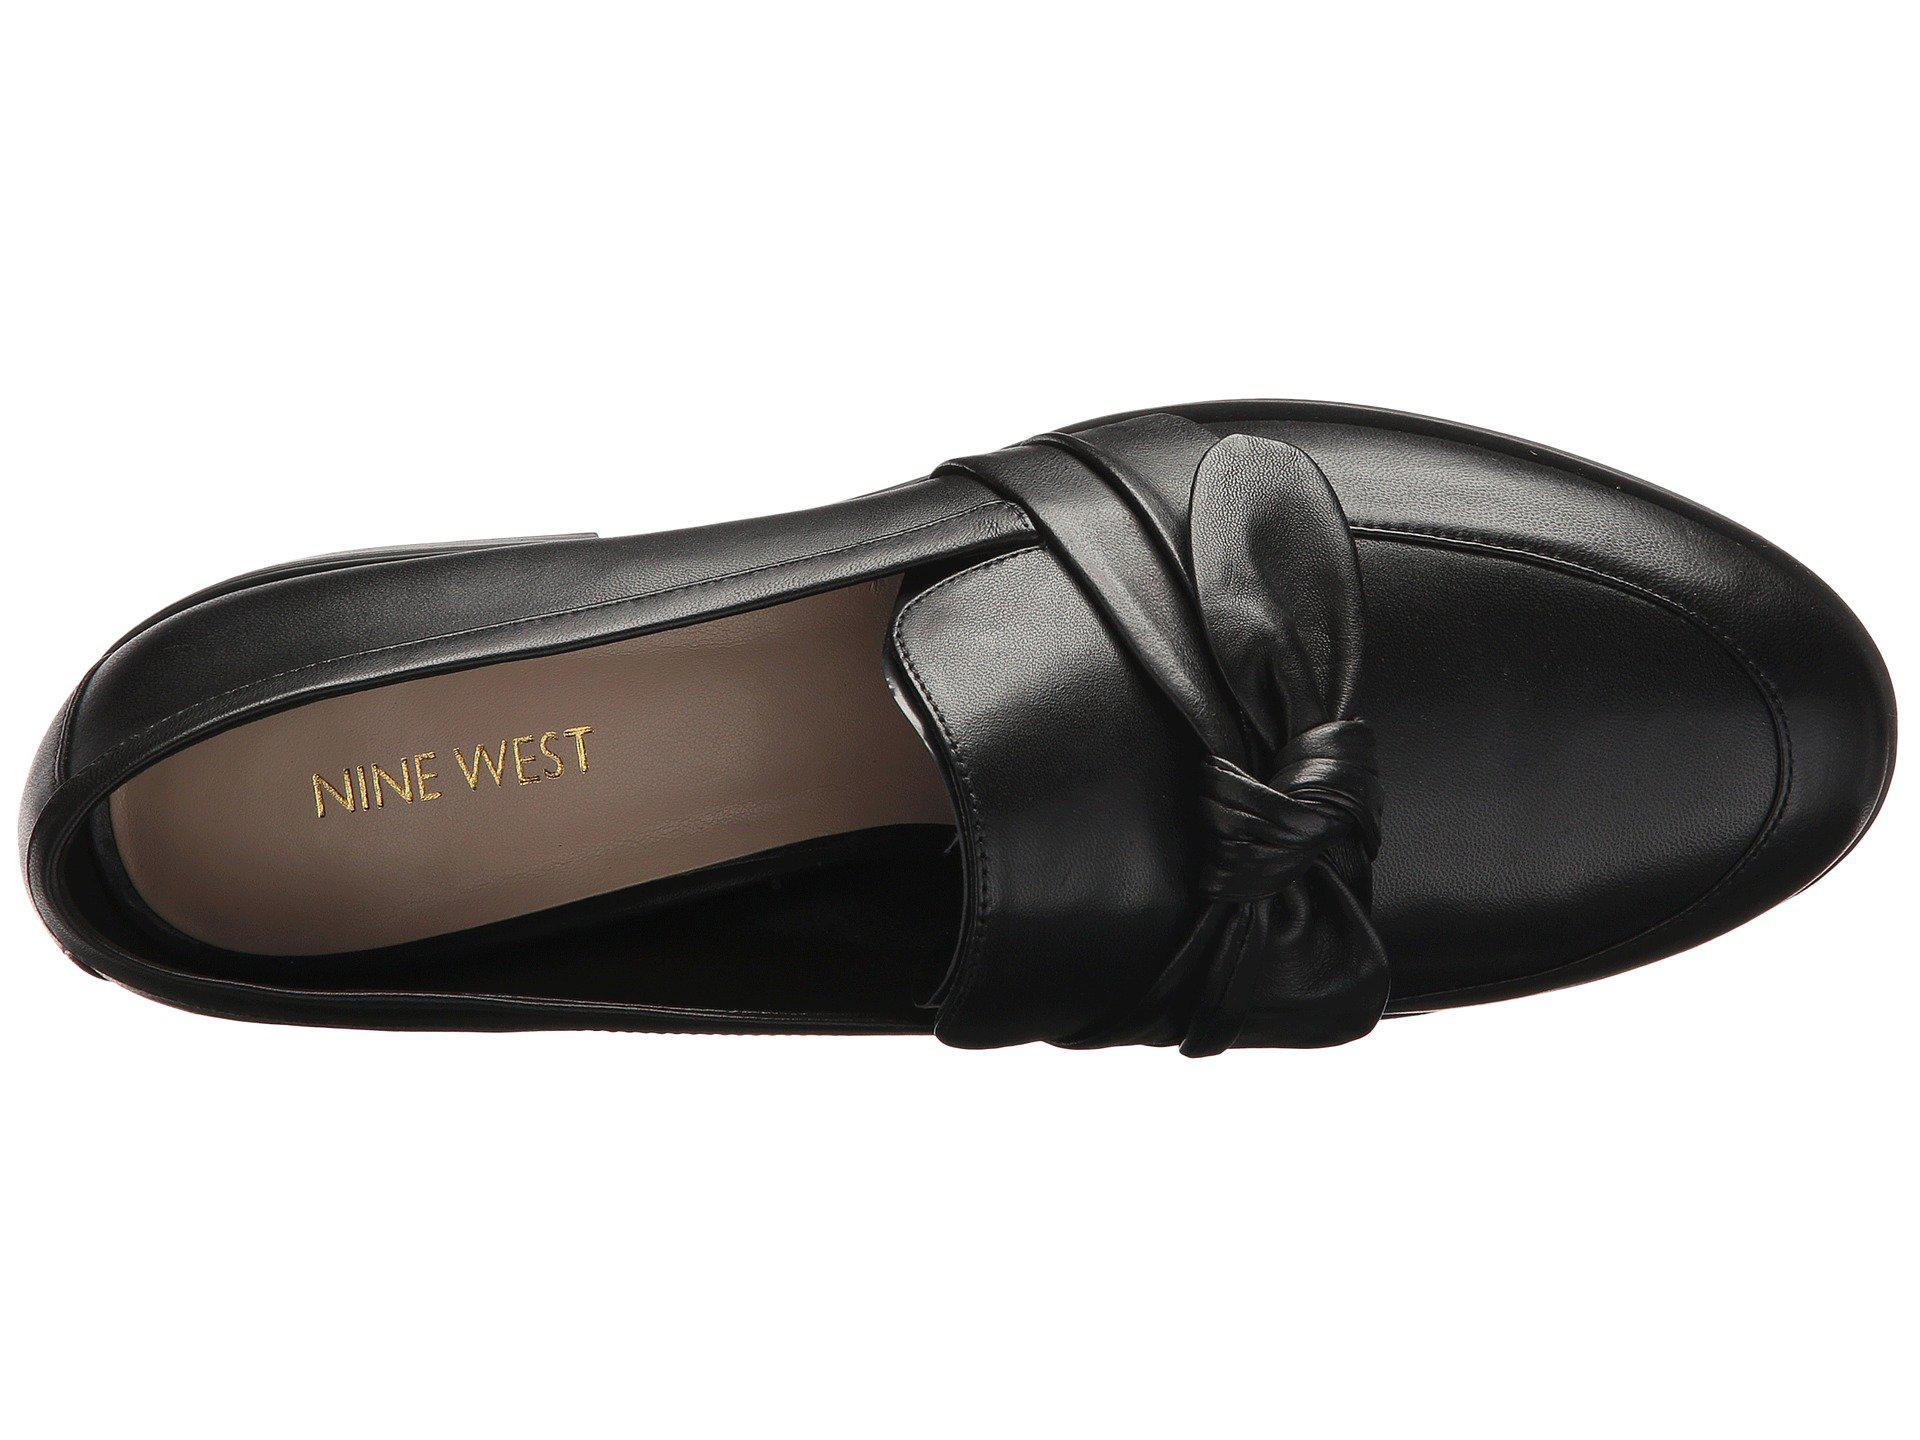 613a37906da Lyst - Nine West Janilly Loafer in Black